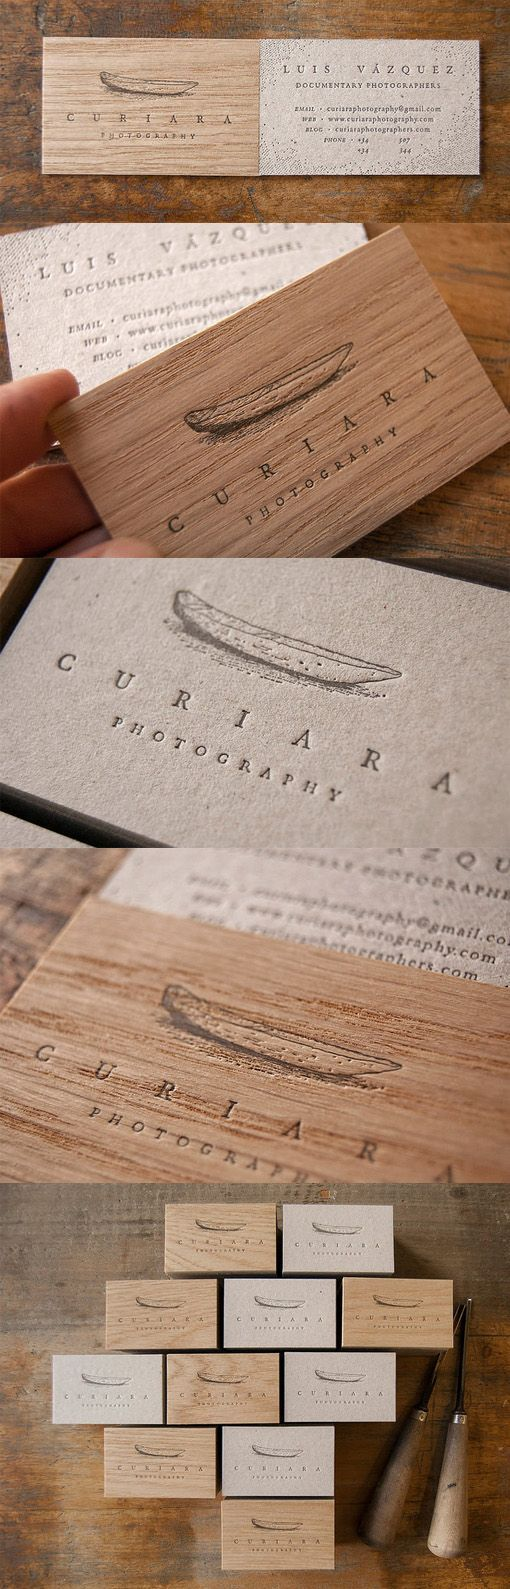 Clever Layered Letterpress Wooden Business Card Design For A Photographer: